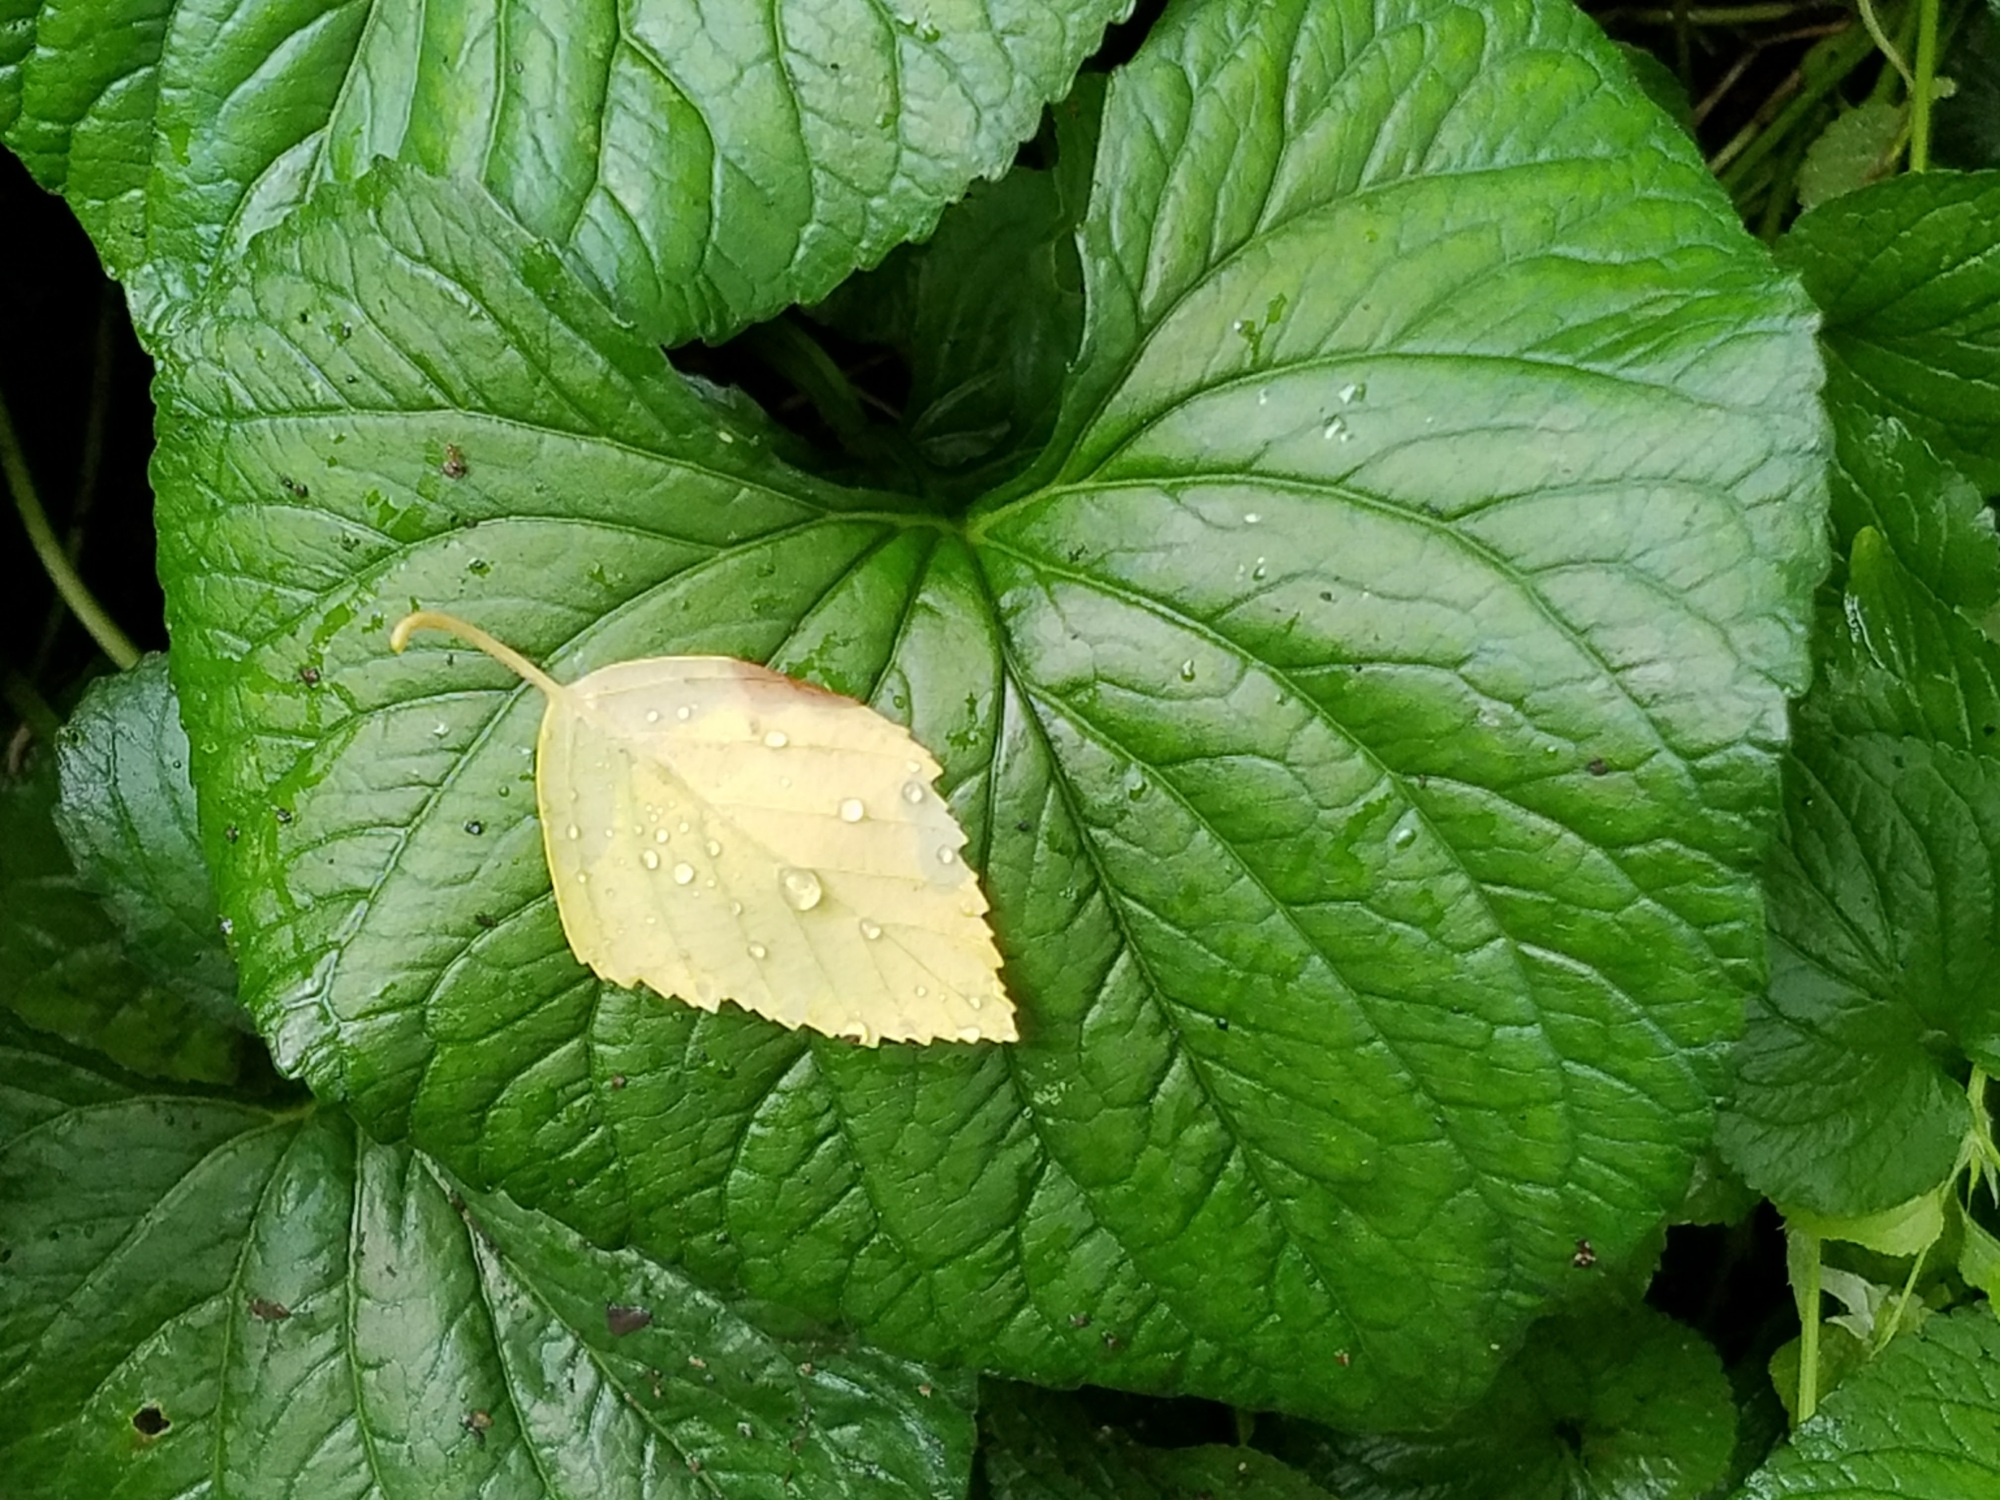 Large green leaf and small yellow leaf, with droplets